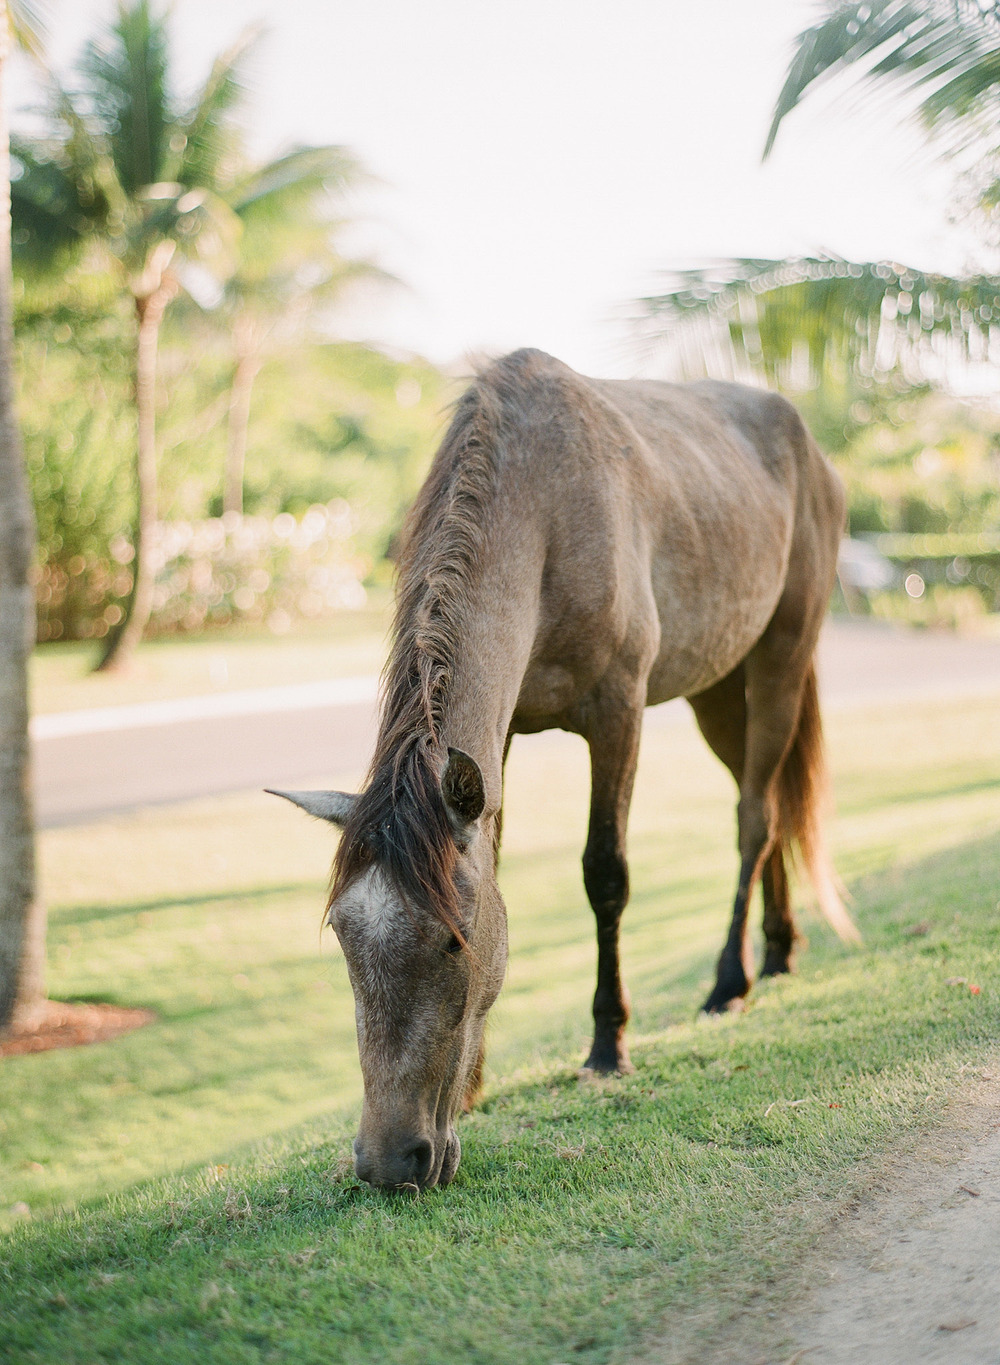 wild horses roam the island at vieques island in puerto rico where destination wedding photographer LExia Frank photographed this modern vieques island wedding at the W hotel on film as she is a film photographer for weddings